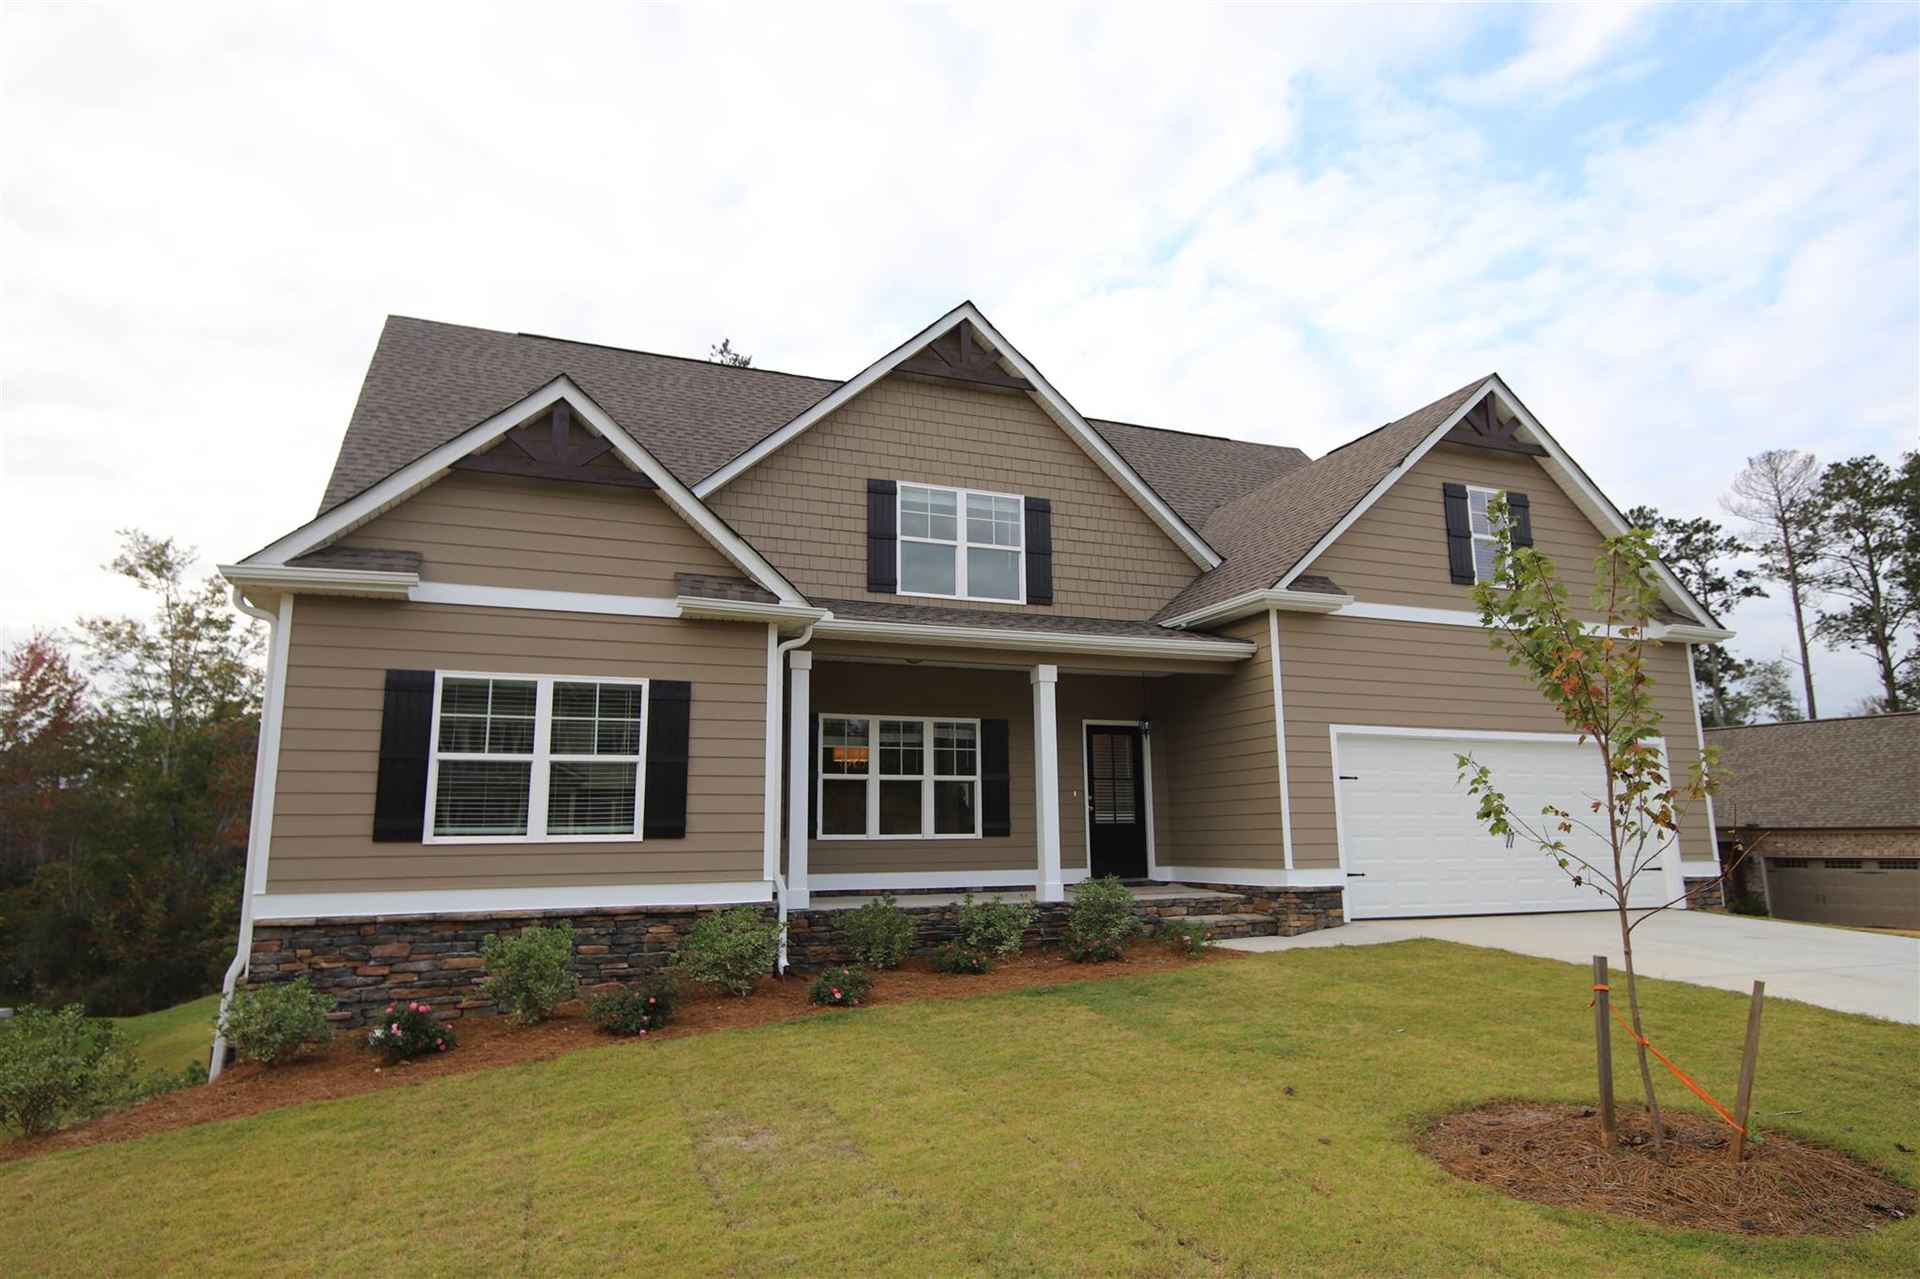 415 Lakeview Way, LaGrange, GA 30241 - #: 8705295